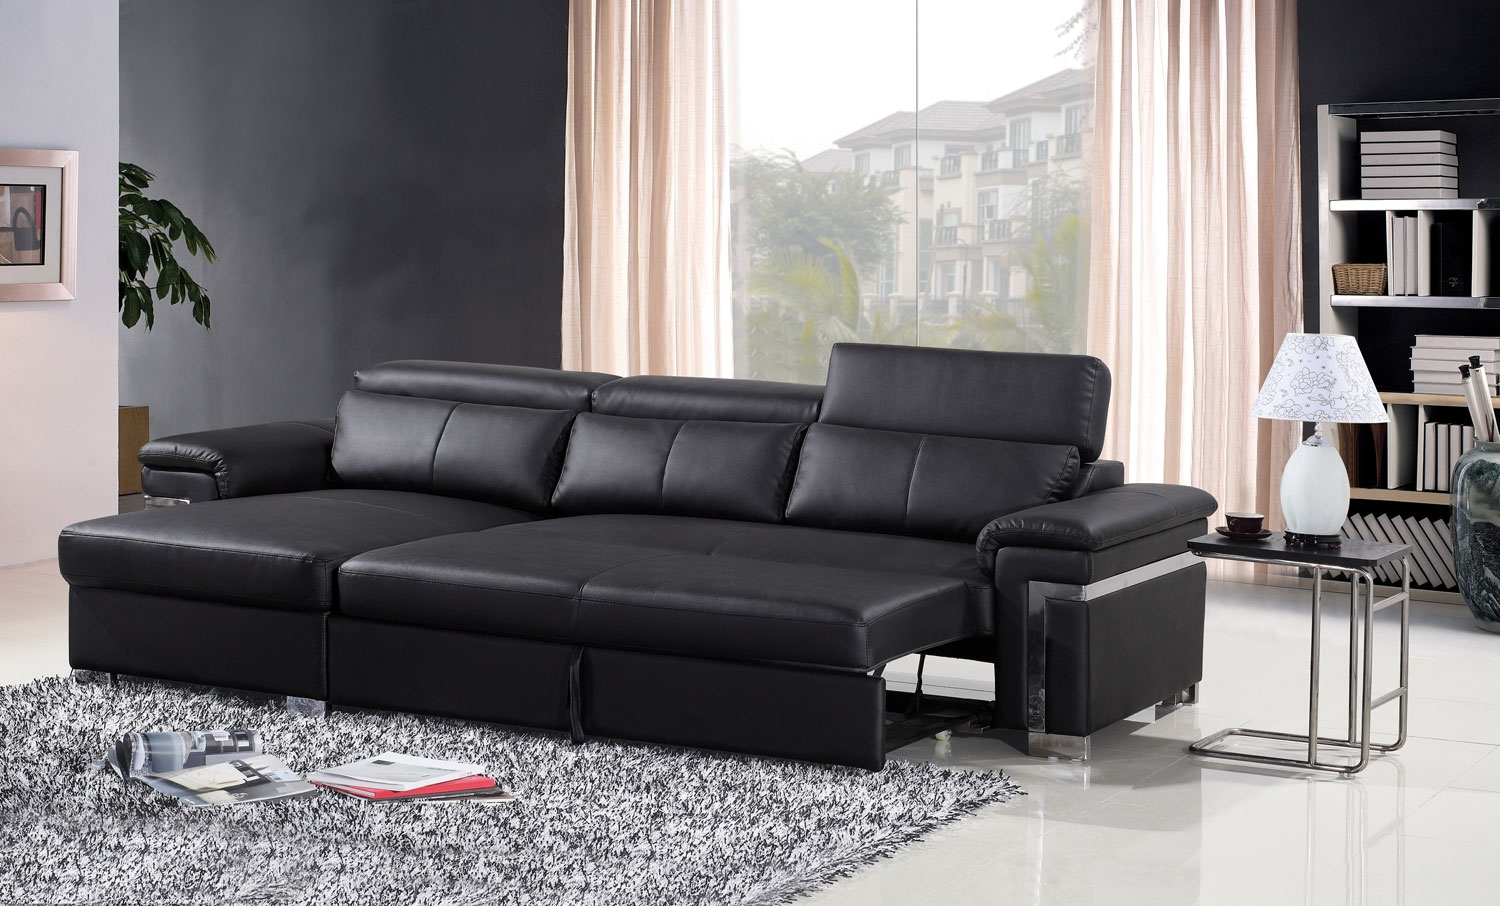 dual reclining sofa slipcover dry cleaning covers cost the best picks of colored leather beds in 2018 ...